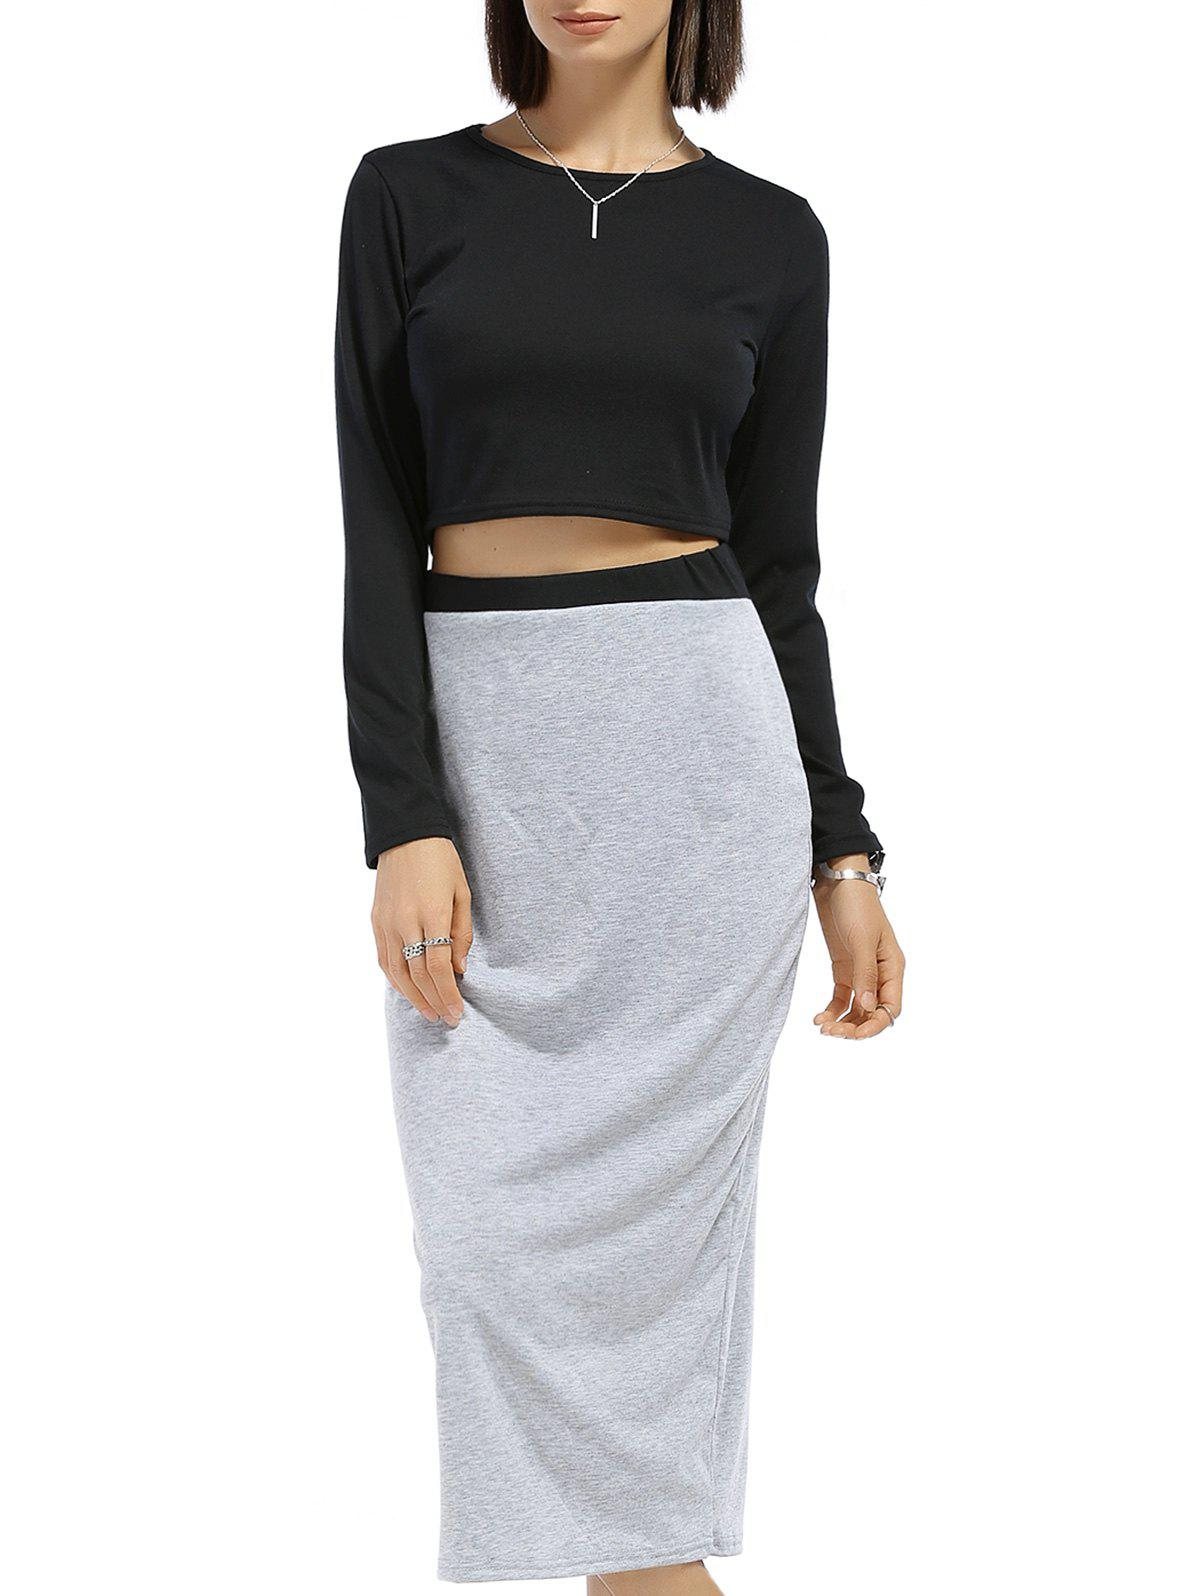 Chic Long Sleeve Round Neck Solid Color Crop Top + Spliced Skirt Women's Twinset - BLACK/GREY S